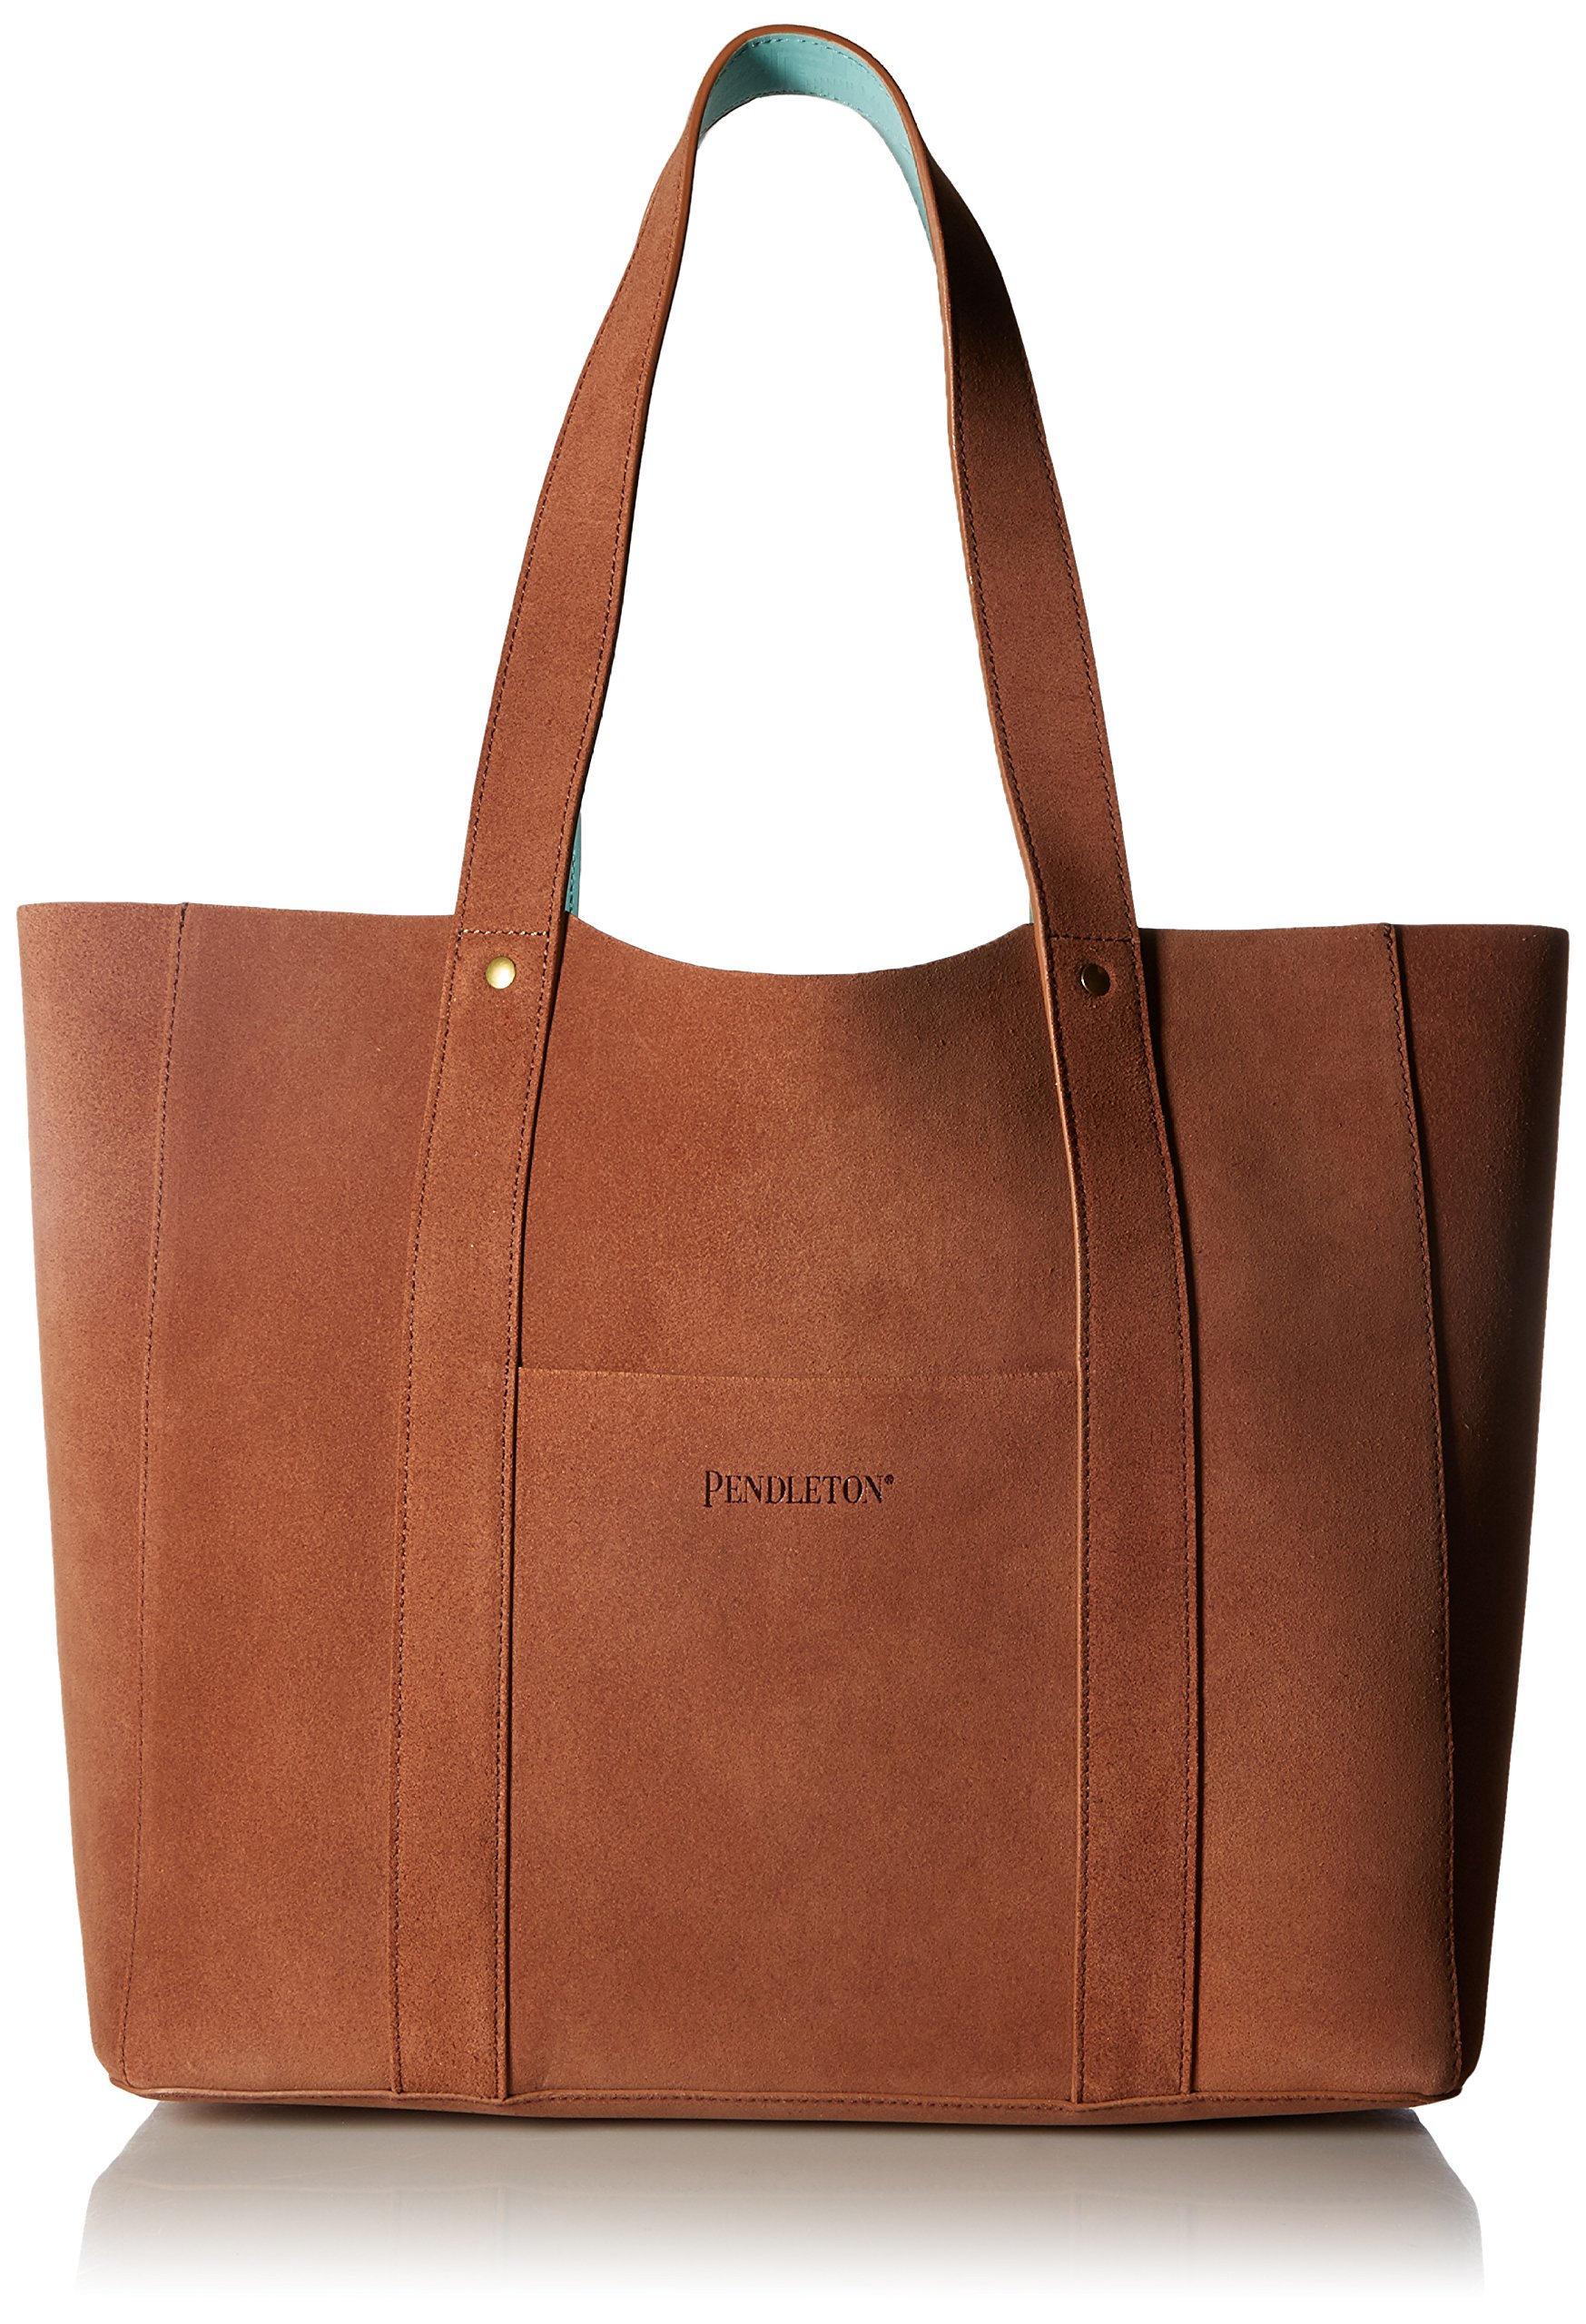 Pendleton Women's Suede Reversible Tote Accessory, -brown/aqua, One Size